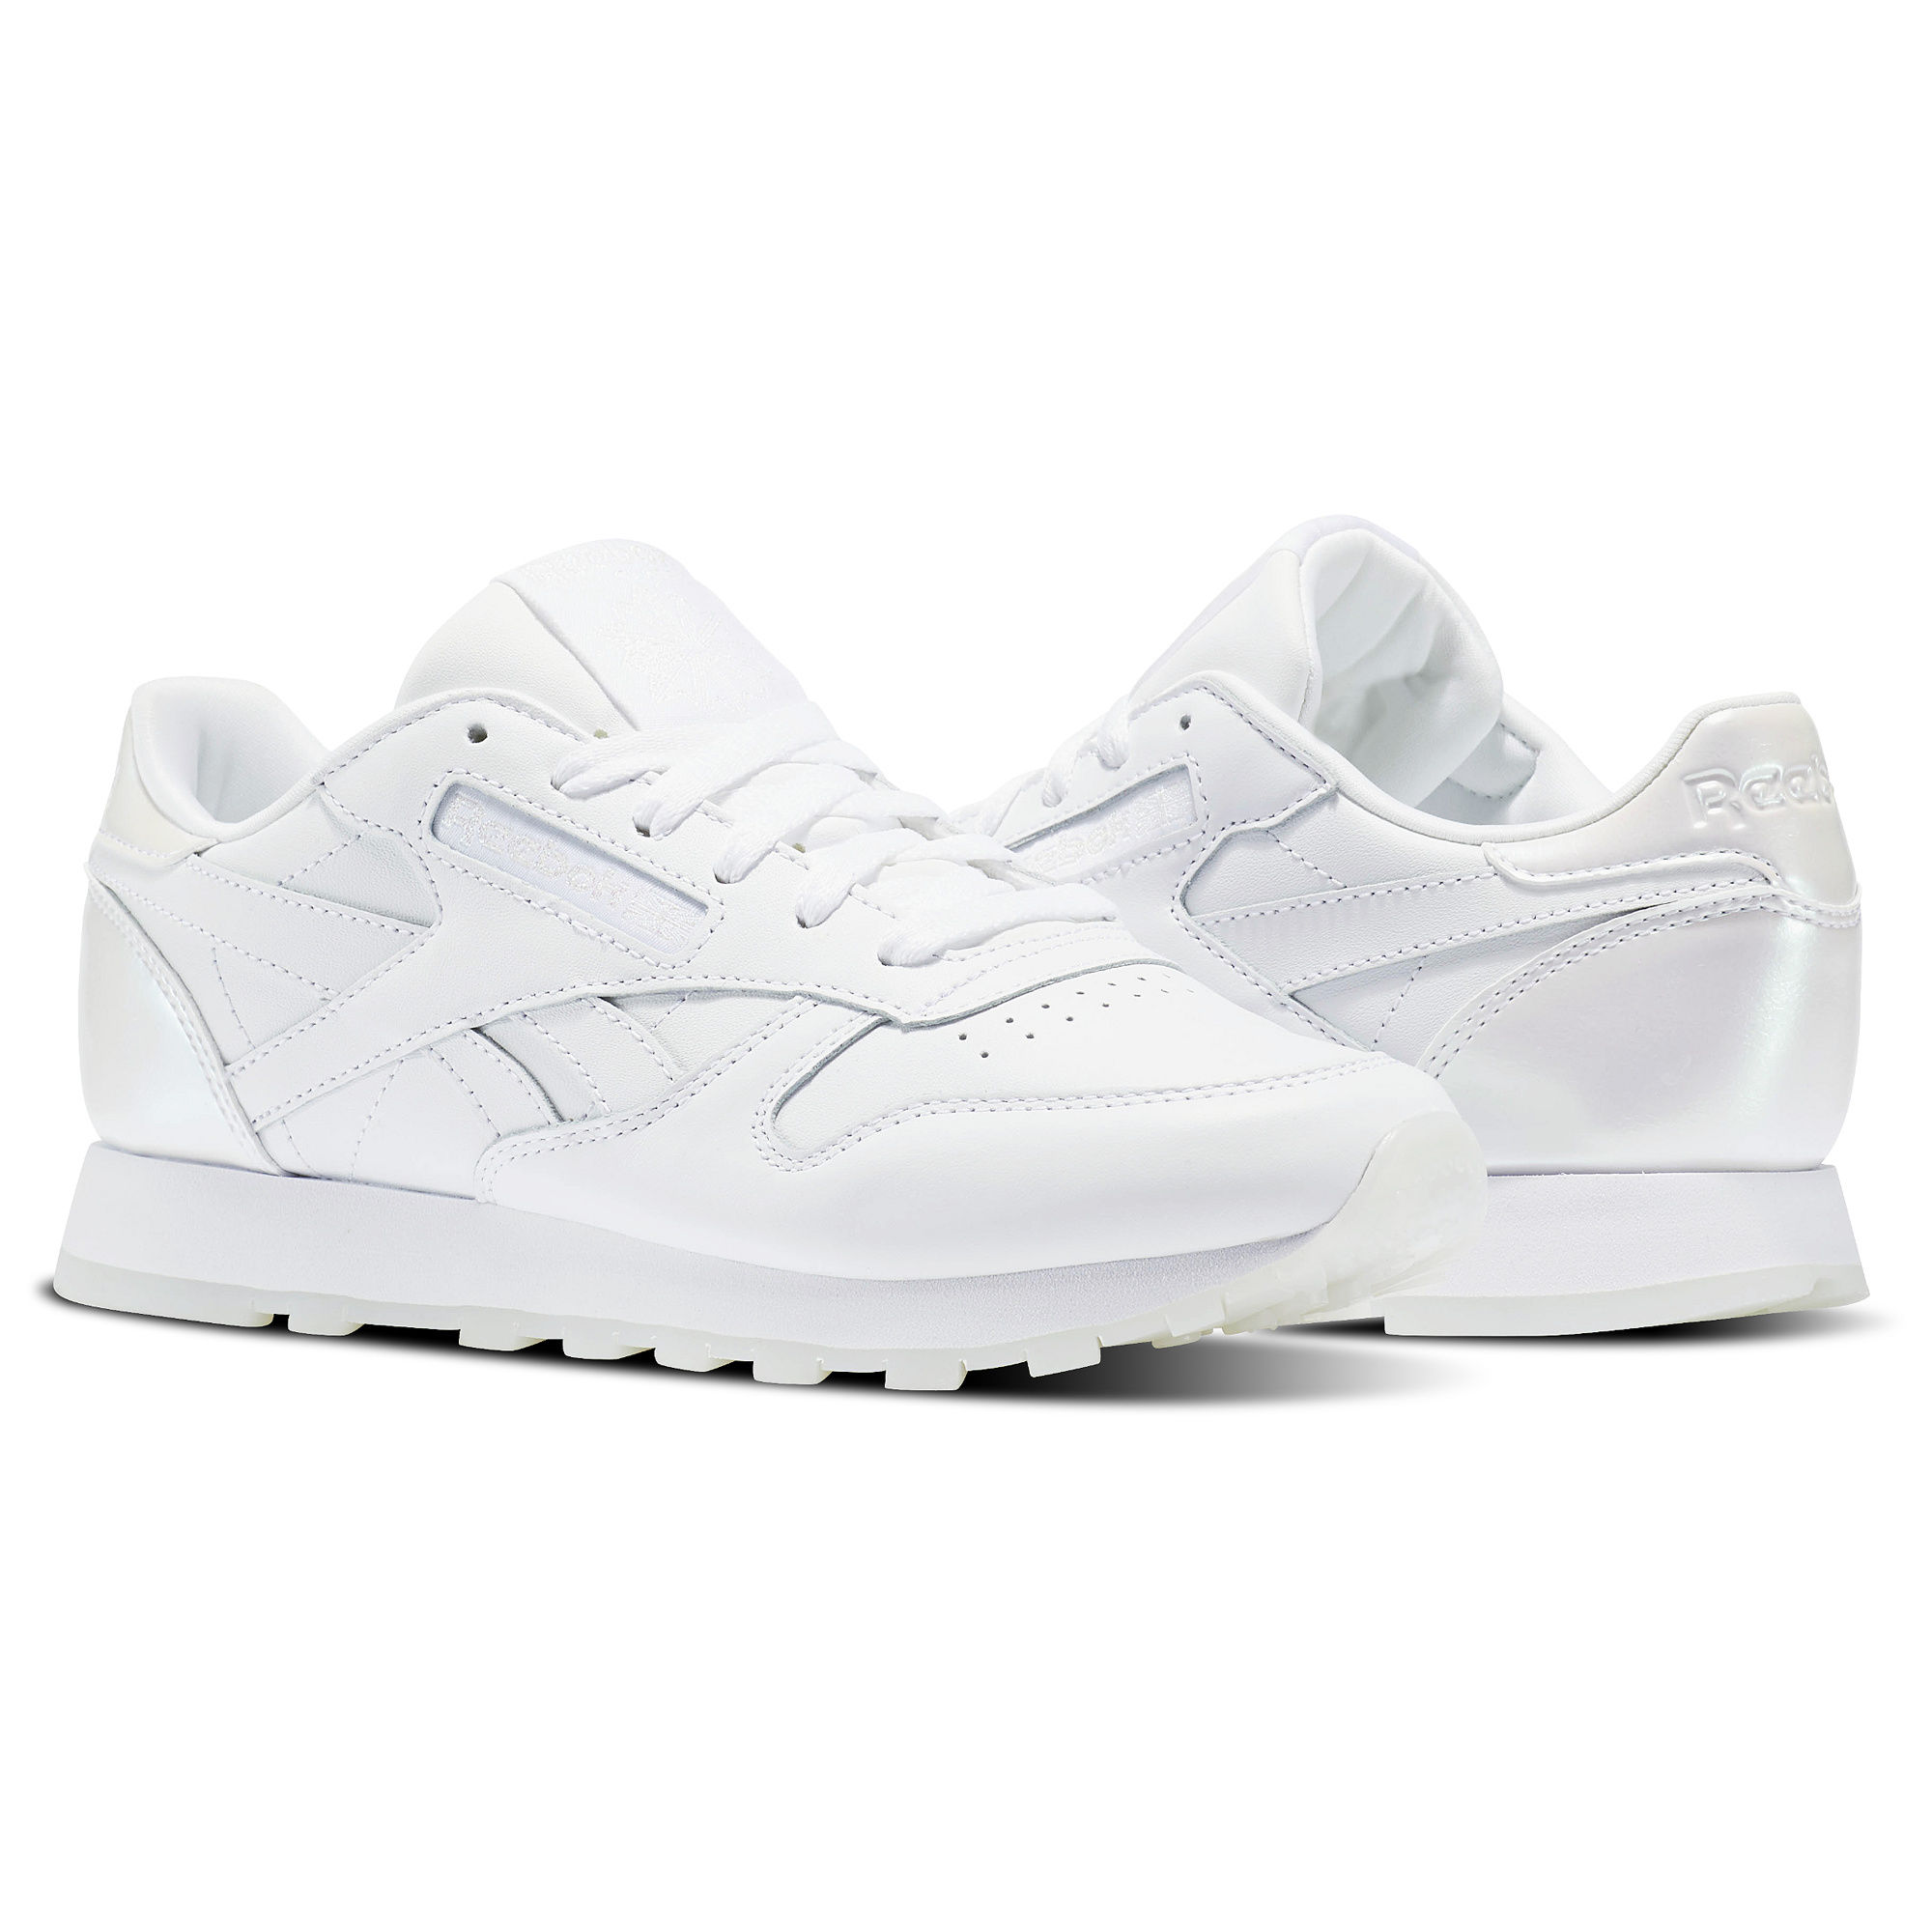 Reebok Classic Leather Melted Metals Womens White/White Sneakers (212XYVZK)